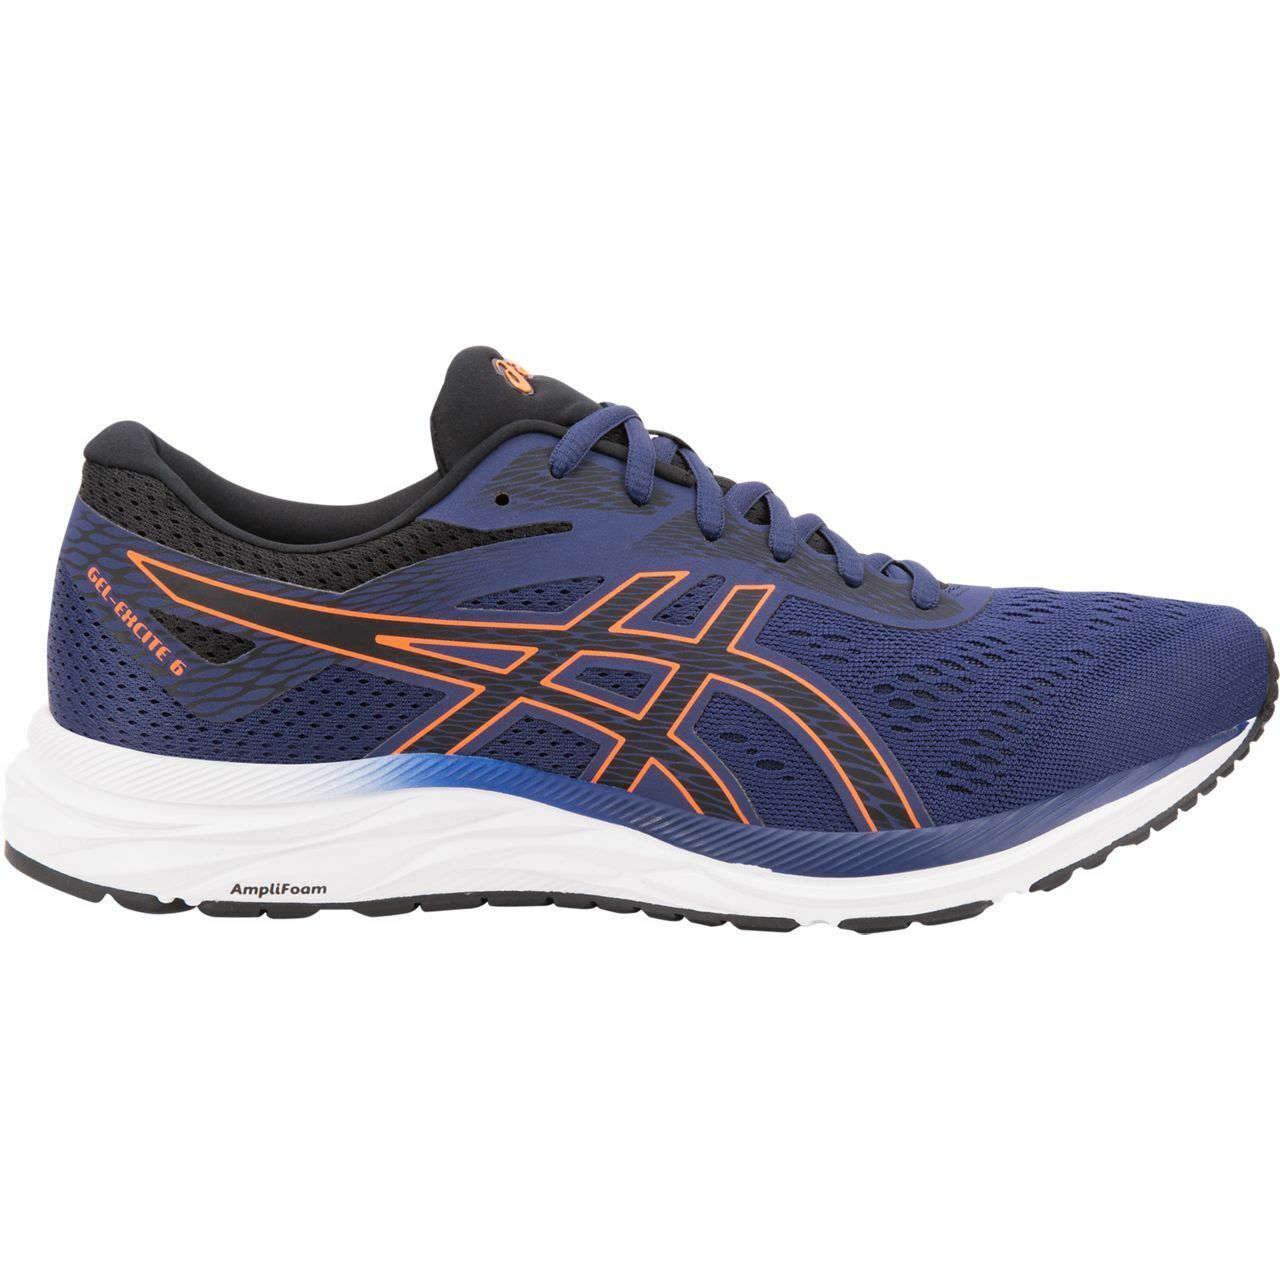 LATEST RELEASE Asics Gel Excite 6 Mens Mens Mens Running shoes (D) (400) af0570